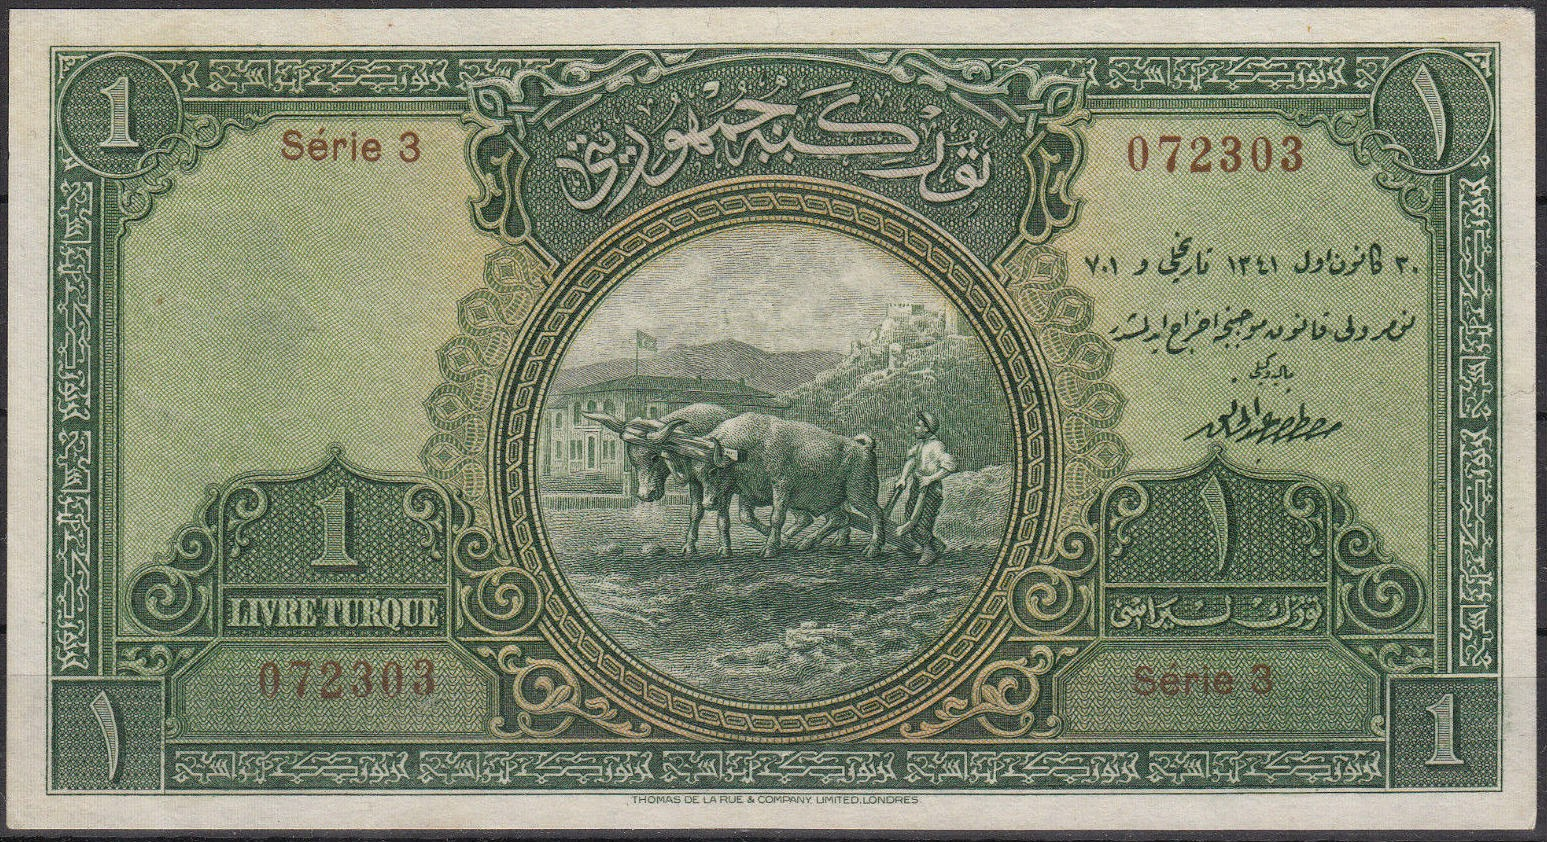 "Turkey Banknotes 1 Turkish Lira ""Livre Turque"" note 1926"